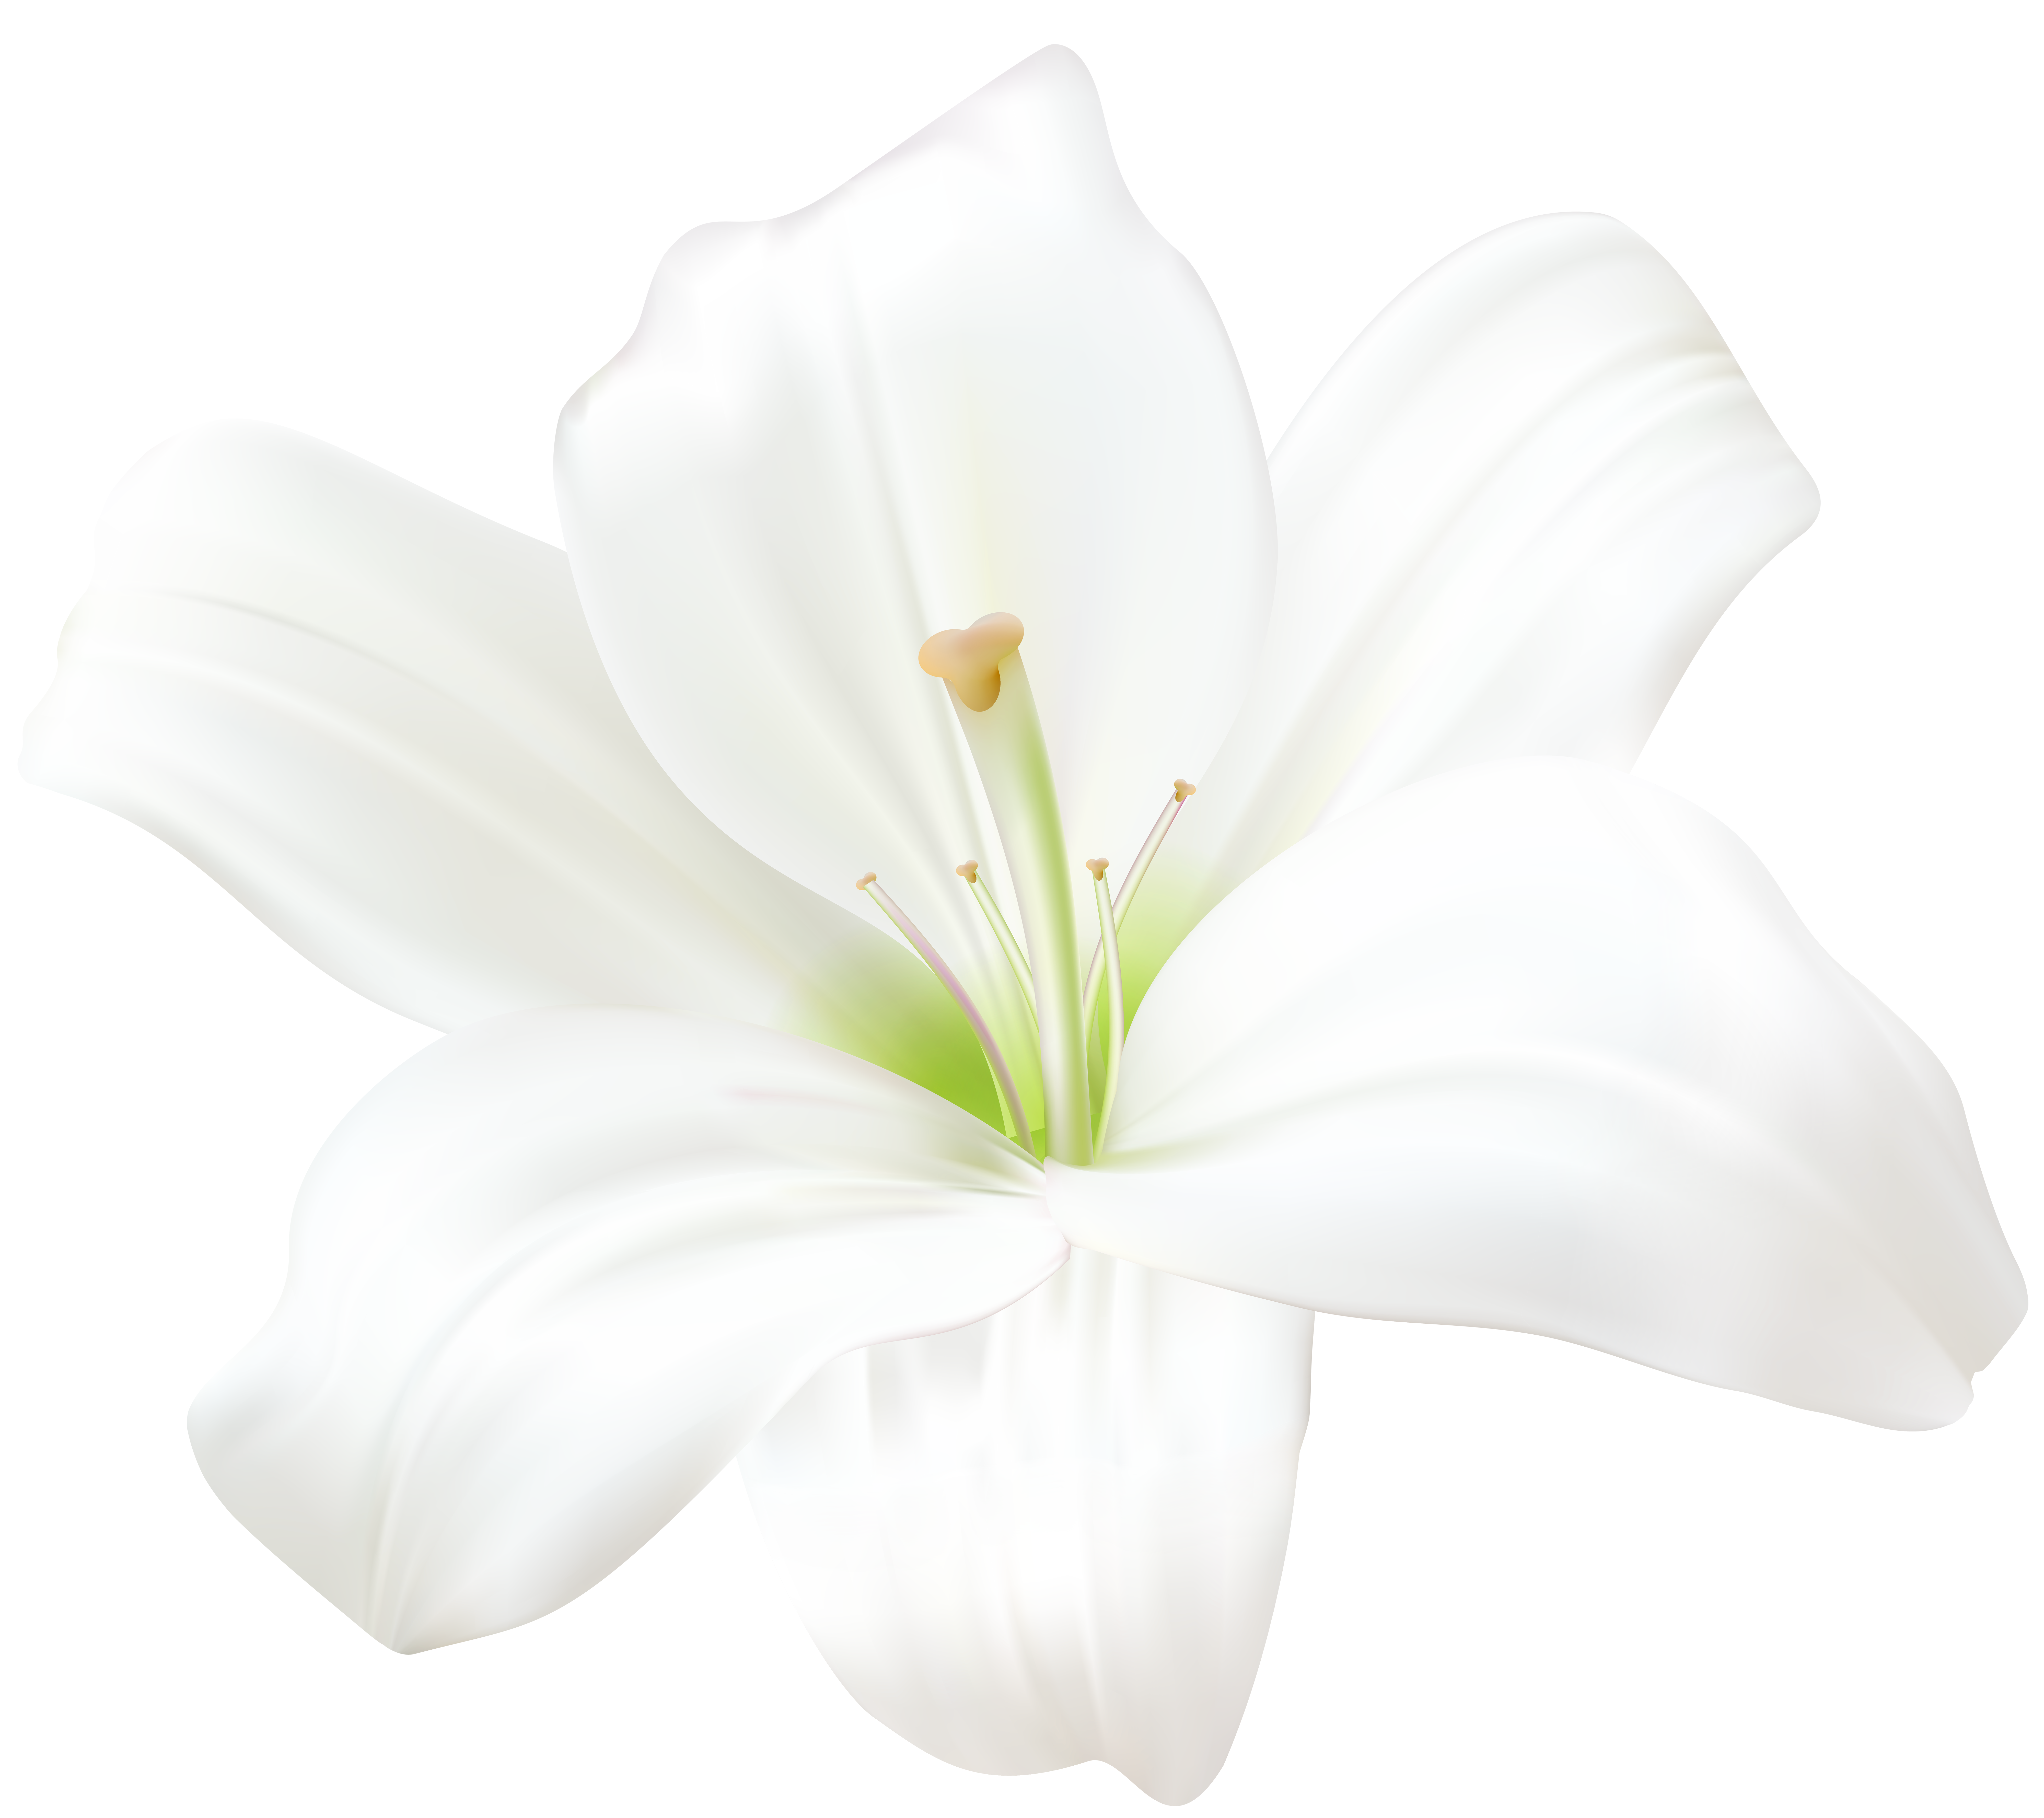 White Lily Png 46482 Free Icons And Png Backgrounds